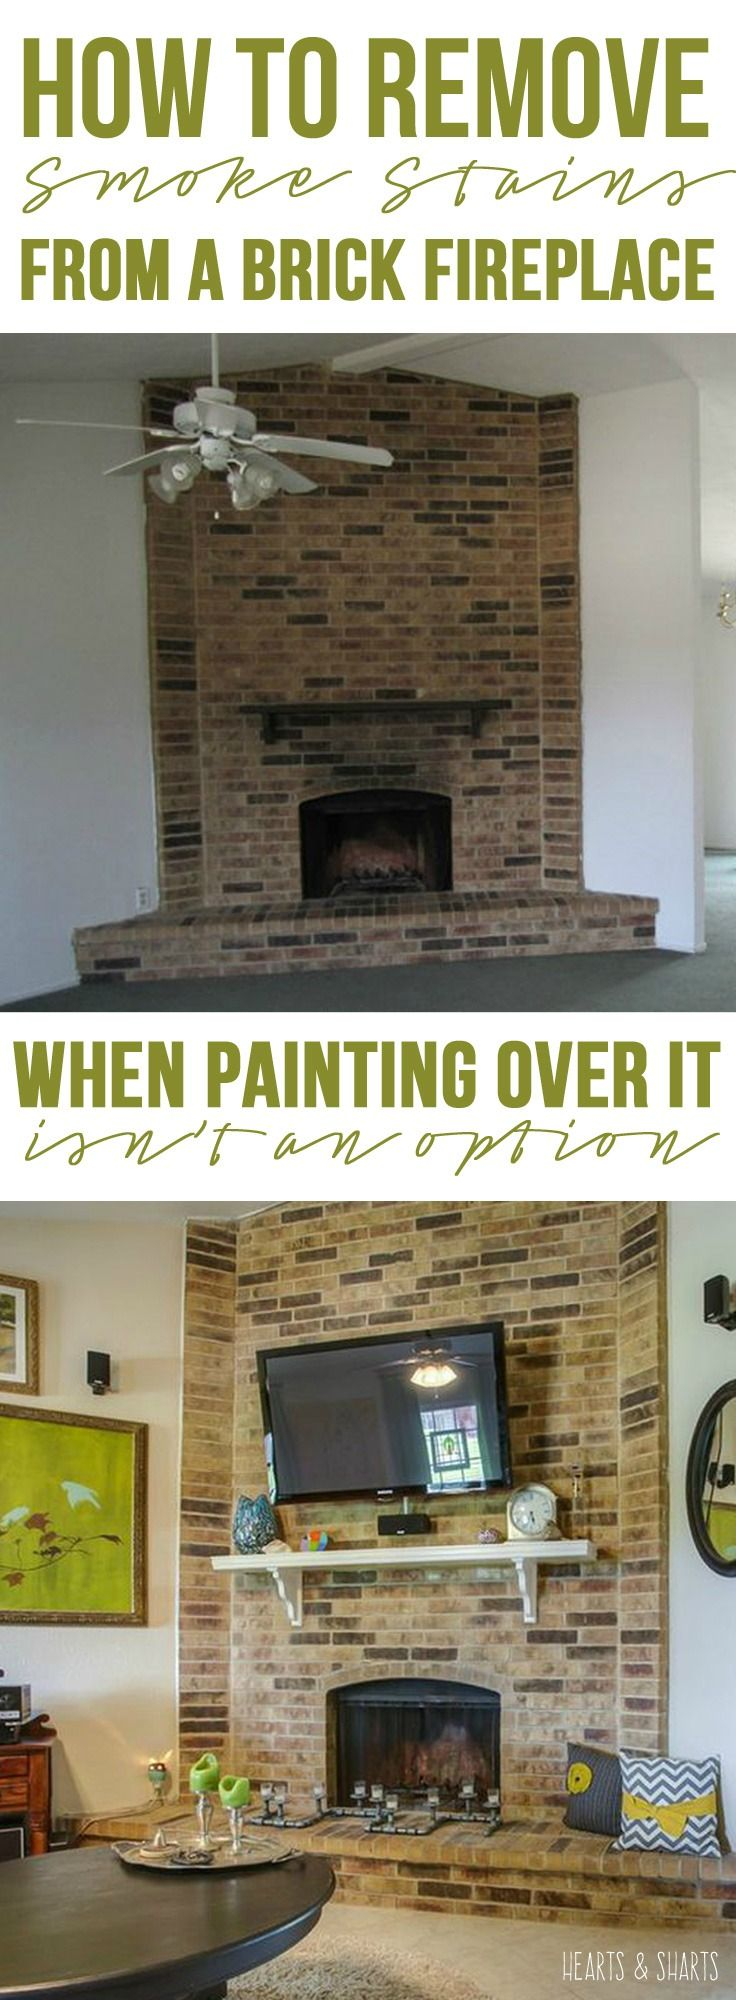 A cheap fix for smoke stains on a brick or stone fireplace surround using a product you already have in your kitchen | Hearts & Sharts | www.heartsandsharts.com